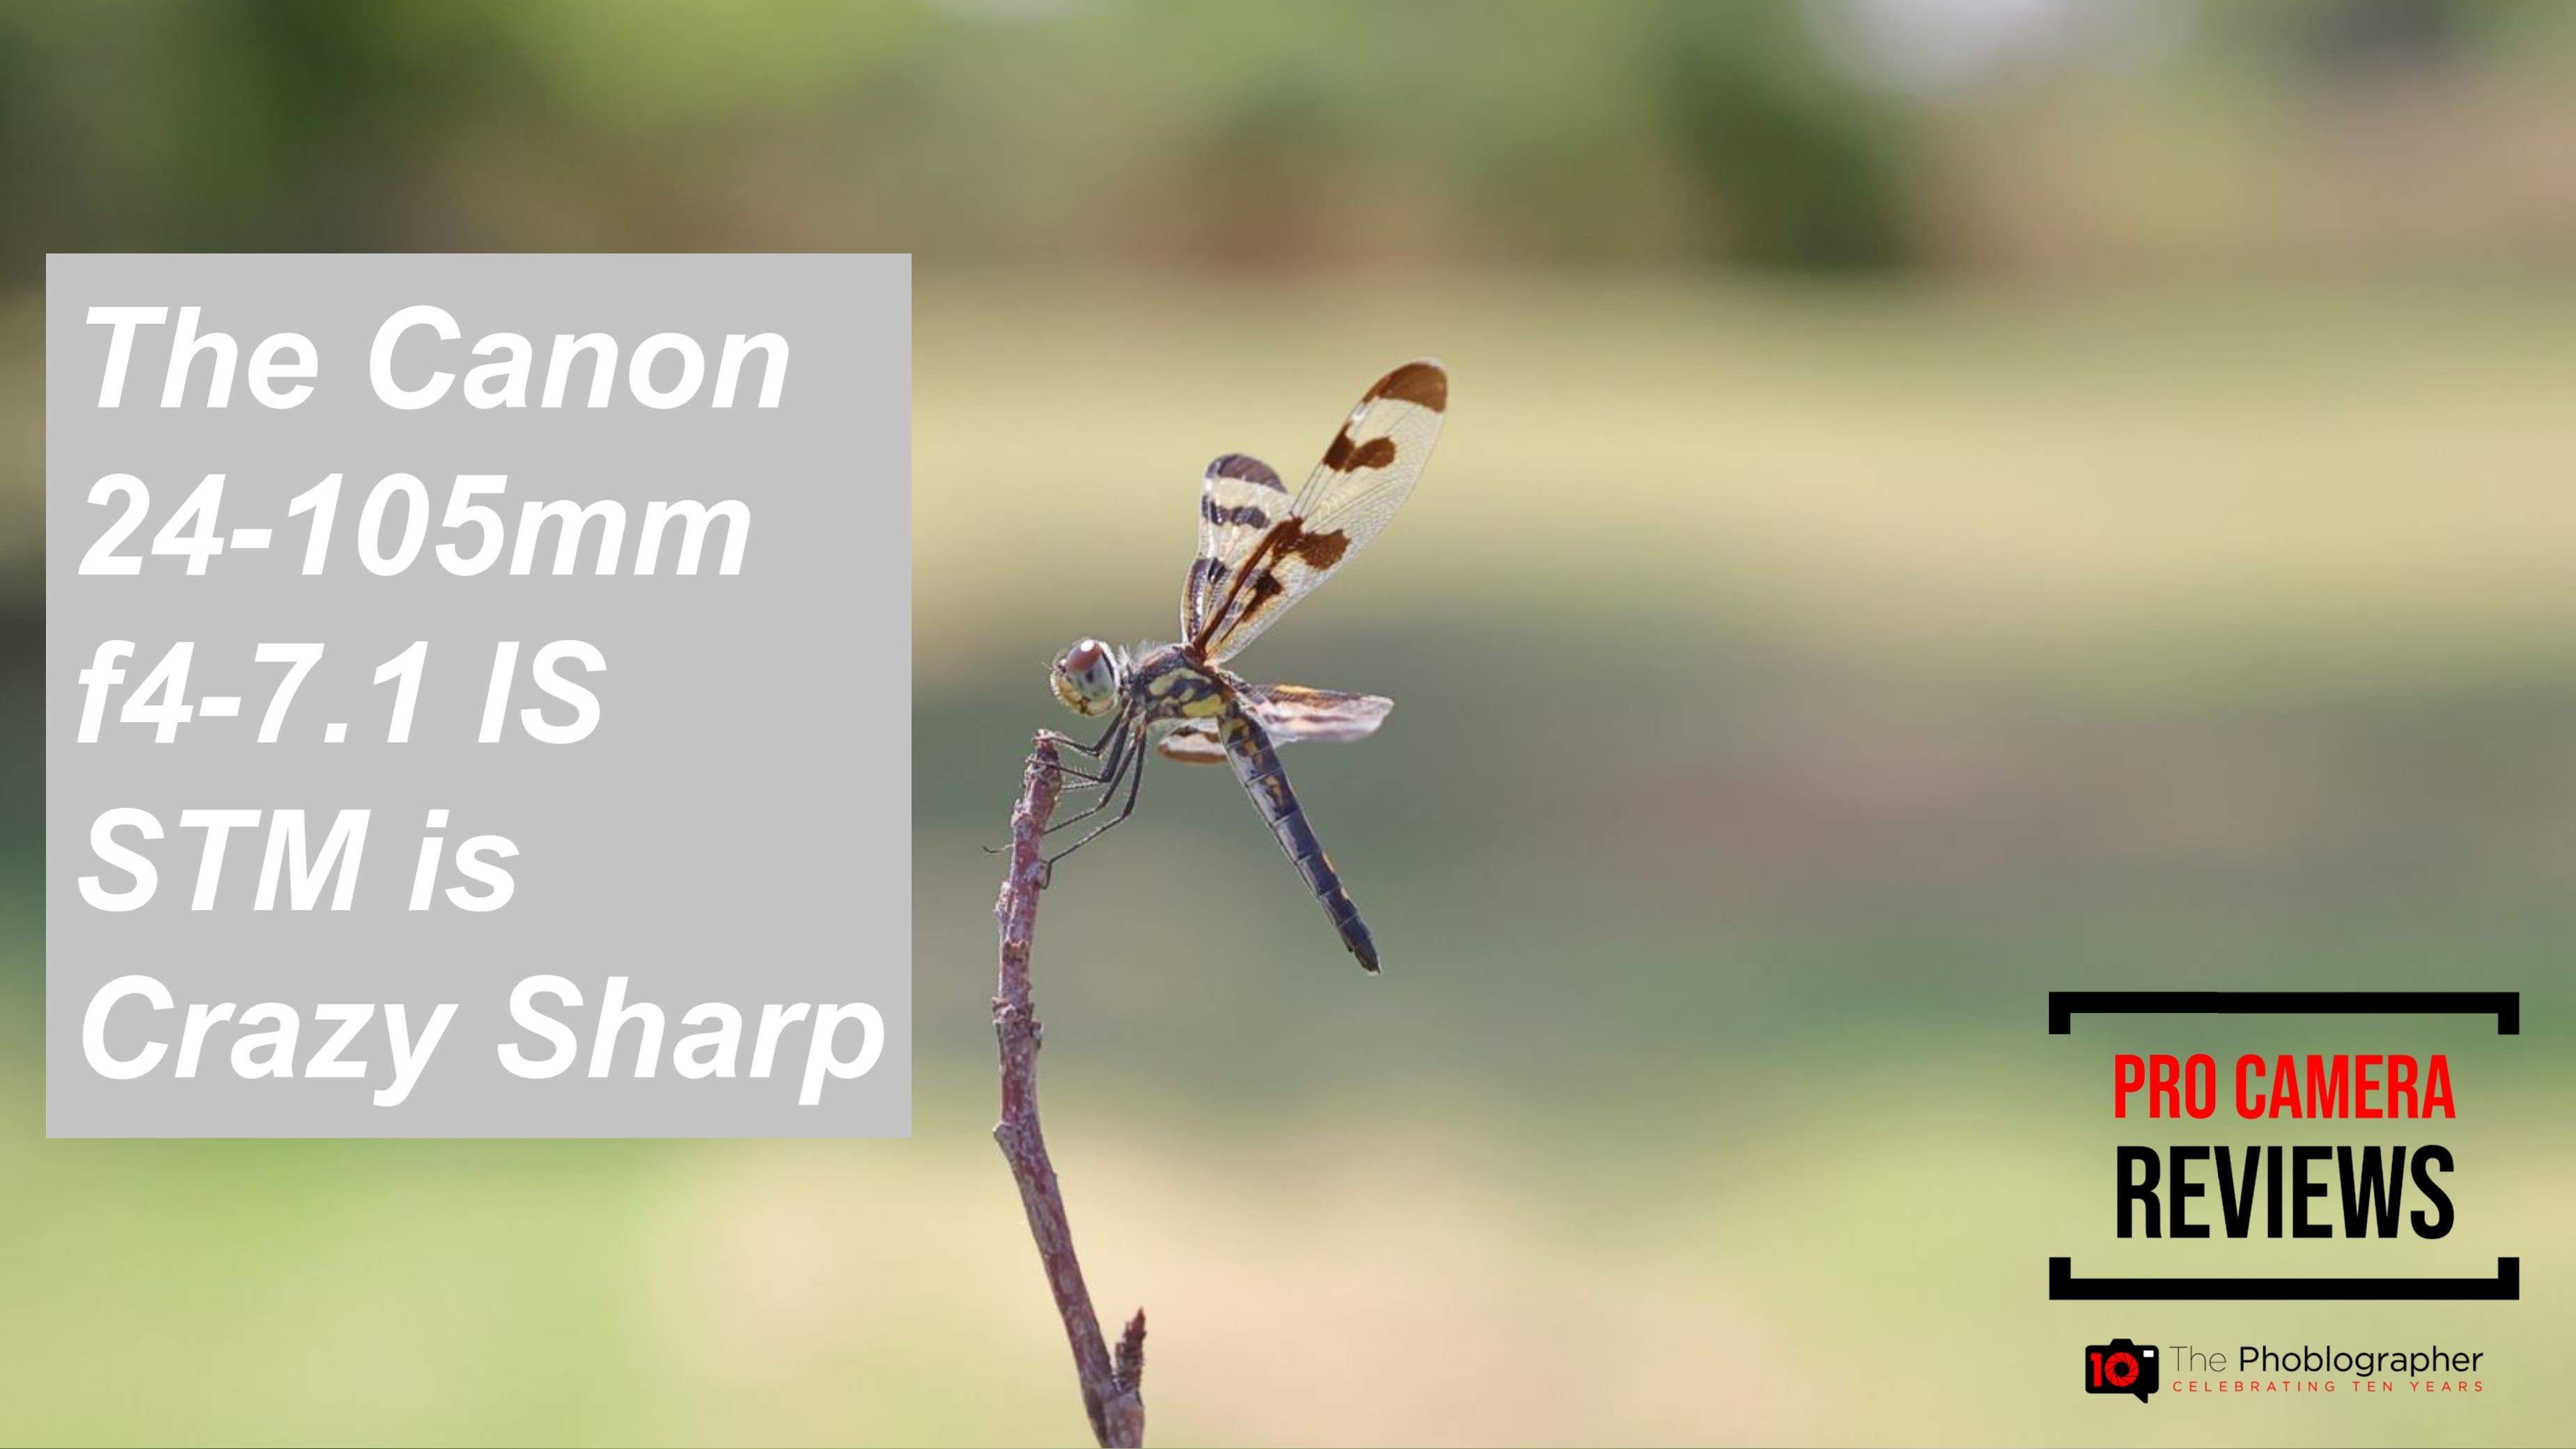 Video: The Canon 24-105mm F4-7.1 IS STM Is Crazy Sharp